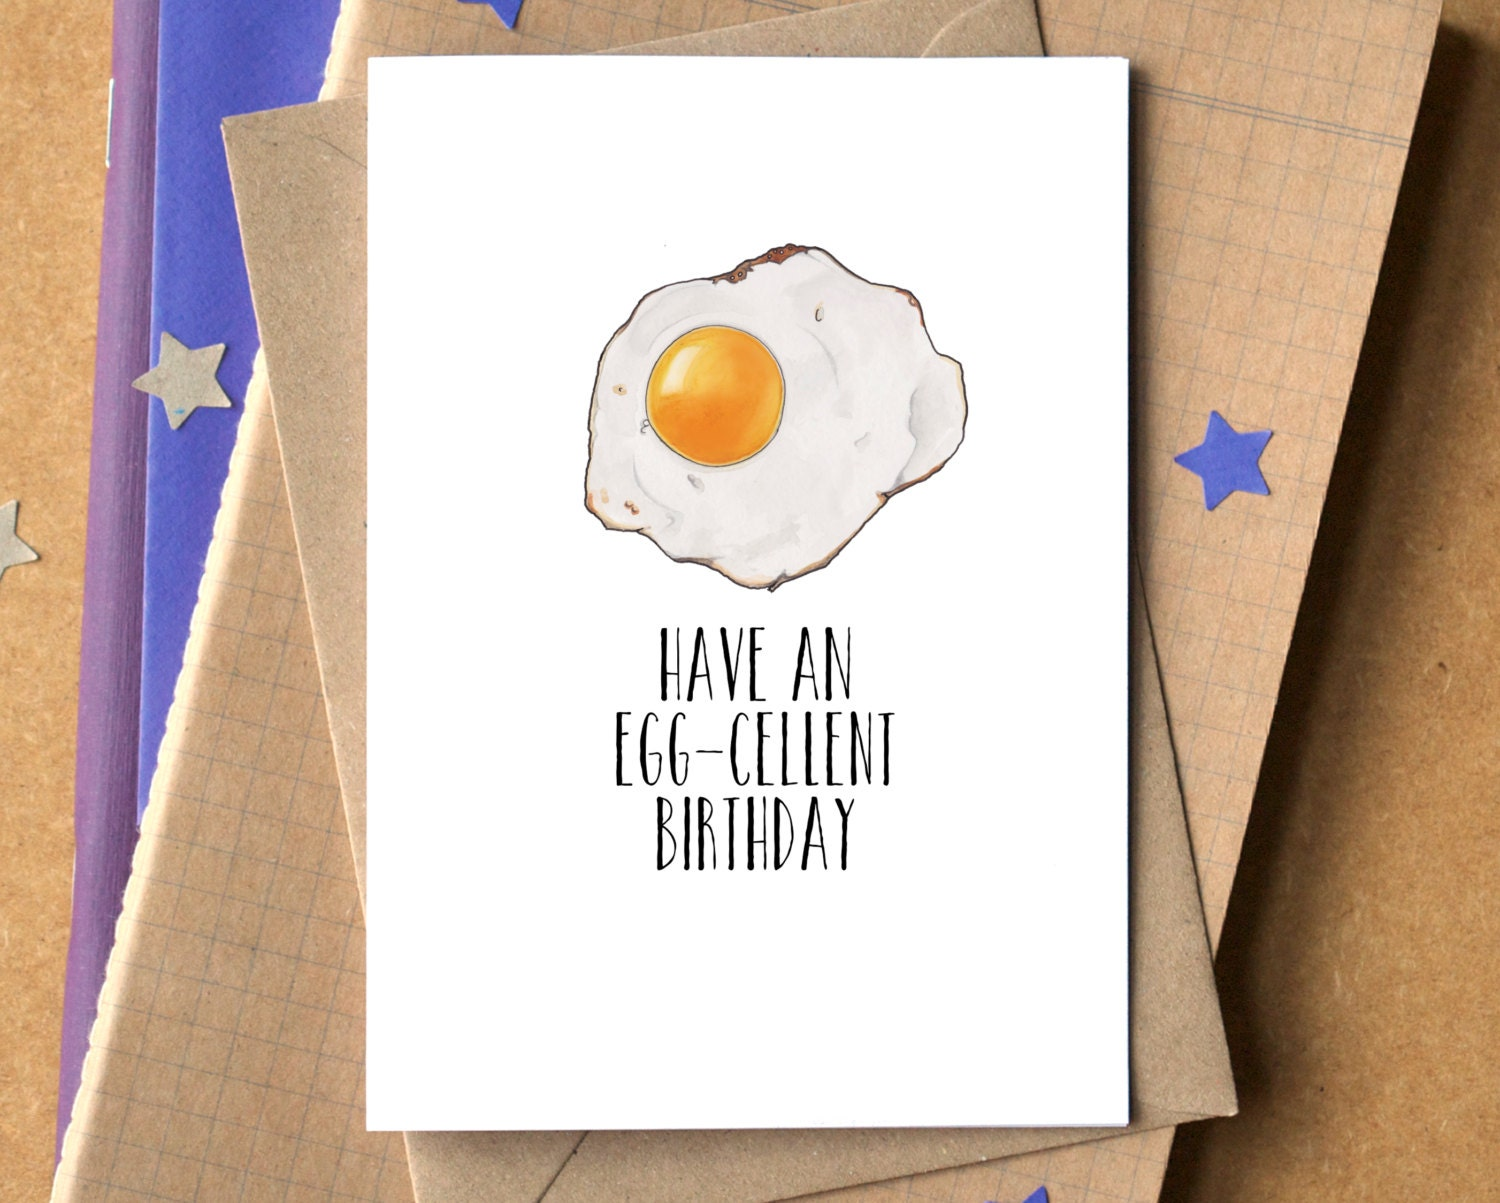 Birthday Cards Brother In Law ~ Have an egg cellent birthday card funny birthday card